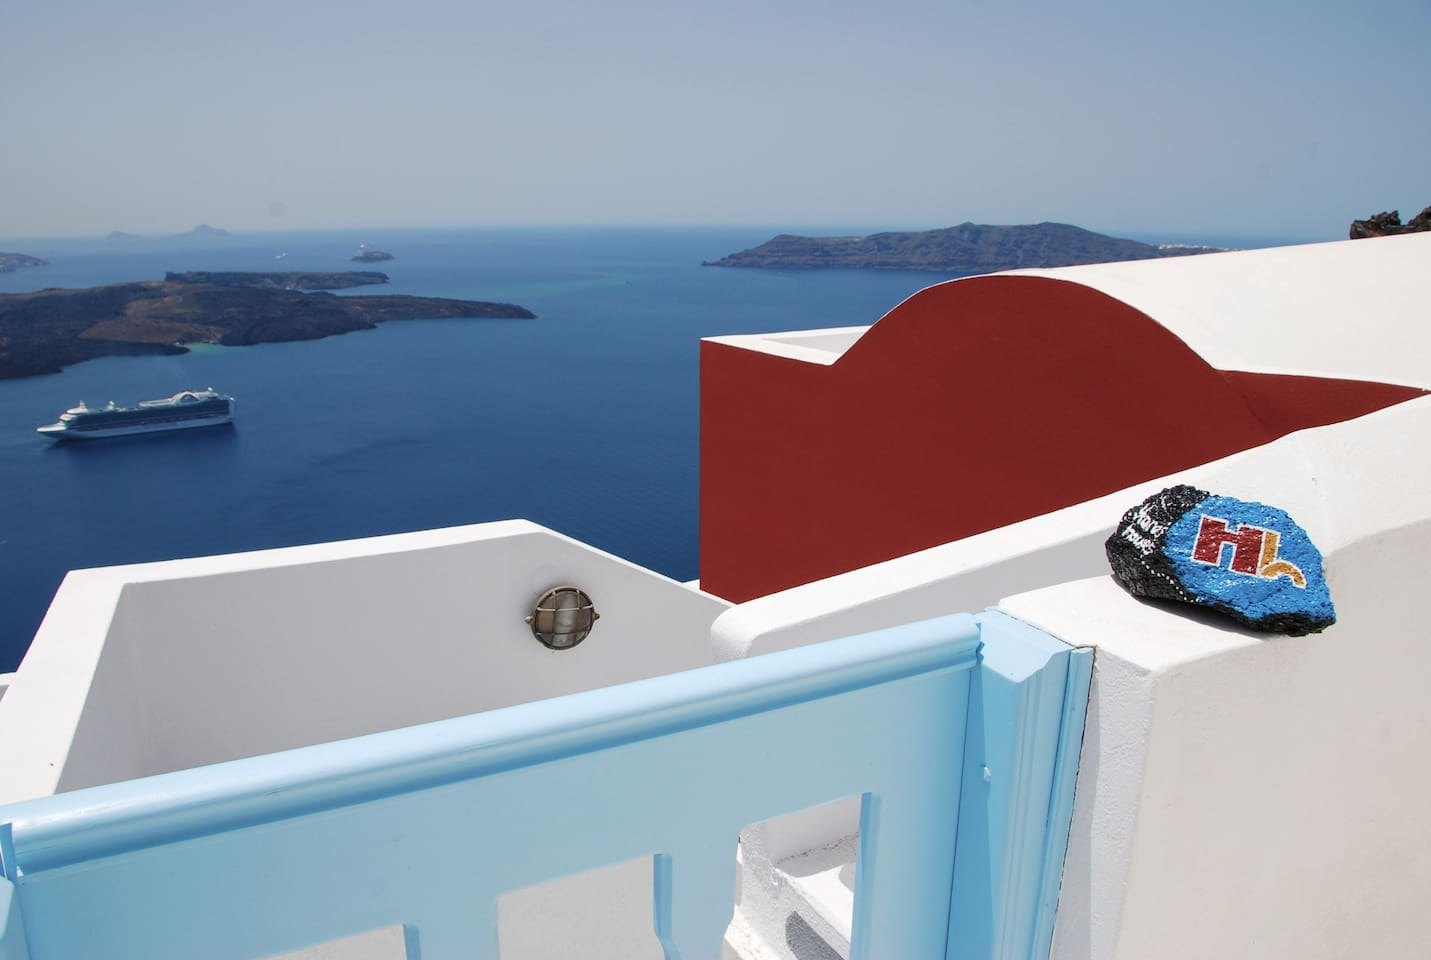 Hara's Houses - Studio 2, the red Tholos house